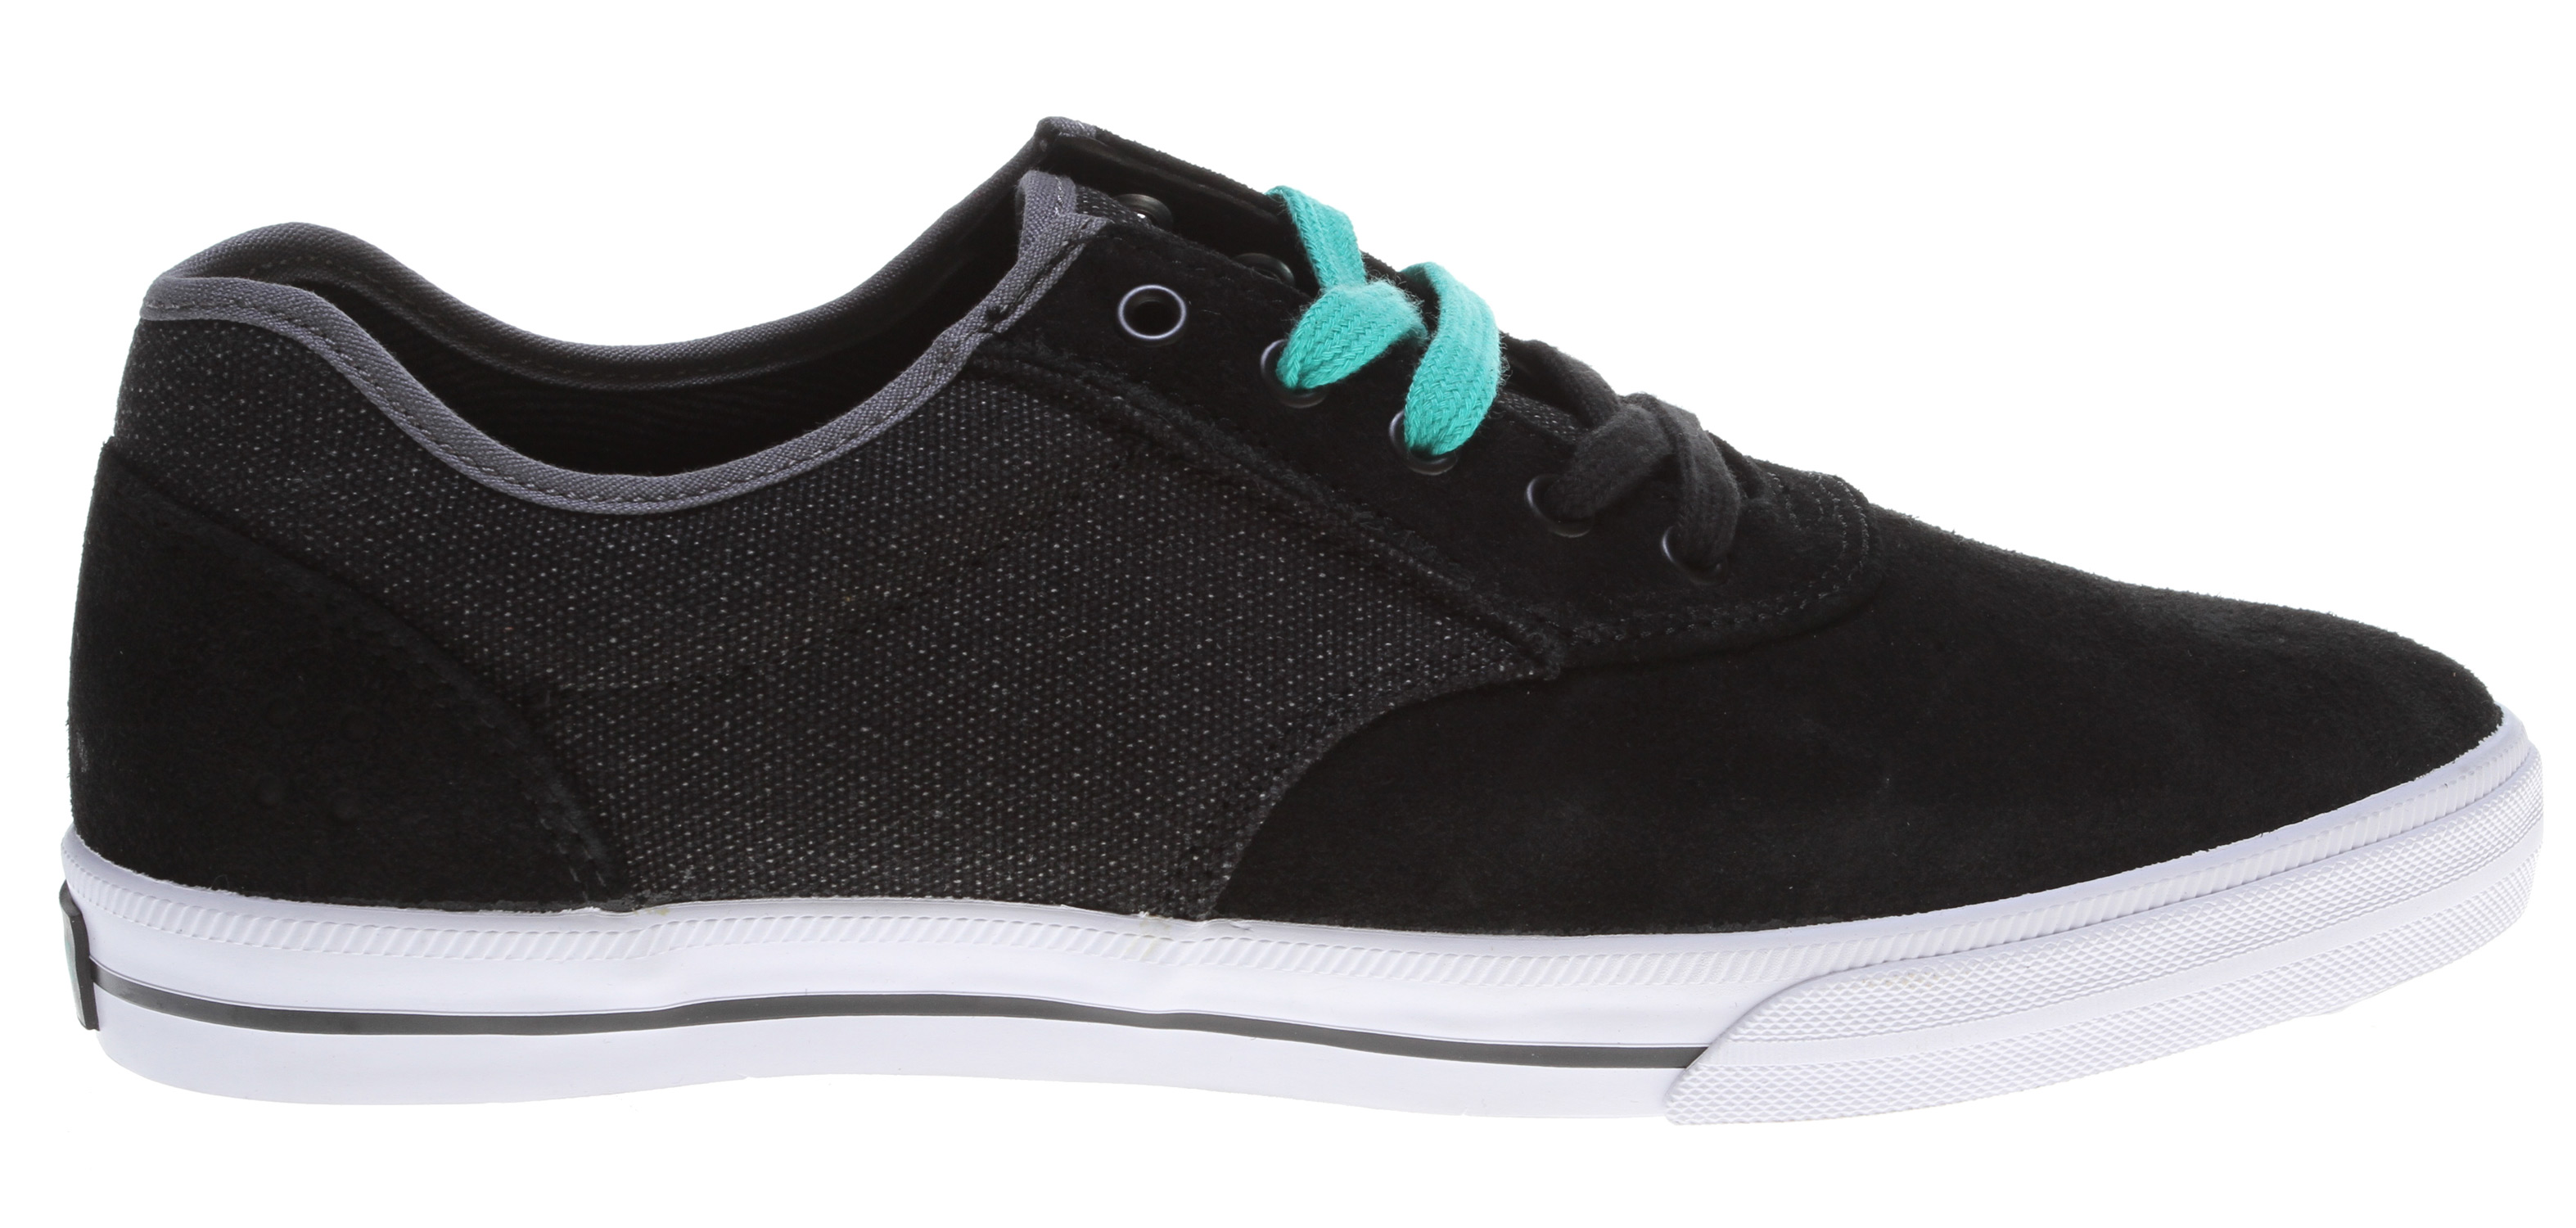 Skateboard Key Features of the Gravis Arto Skate Shoes: Premium Suede And Canvas Upper Poron Foam Is Loaded Inside The Sole Cloud 9 PU Footbed Breathable Mesh Lining High Traction Rubber Outsole Two Laces - $49.95